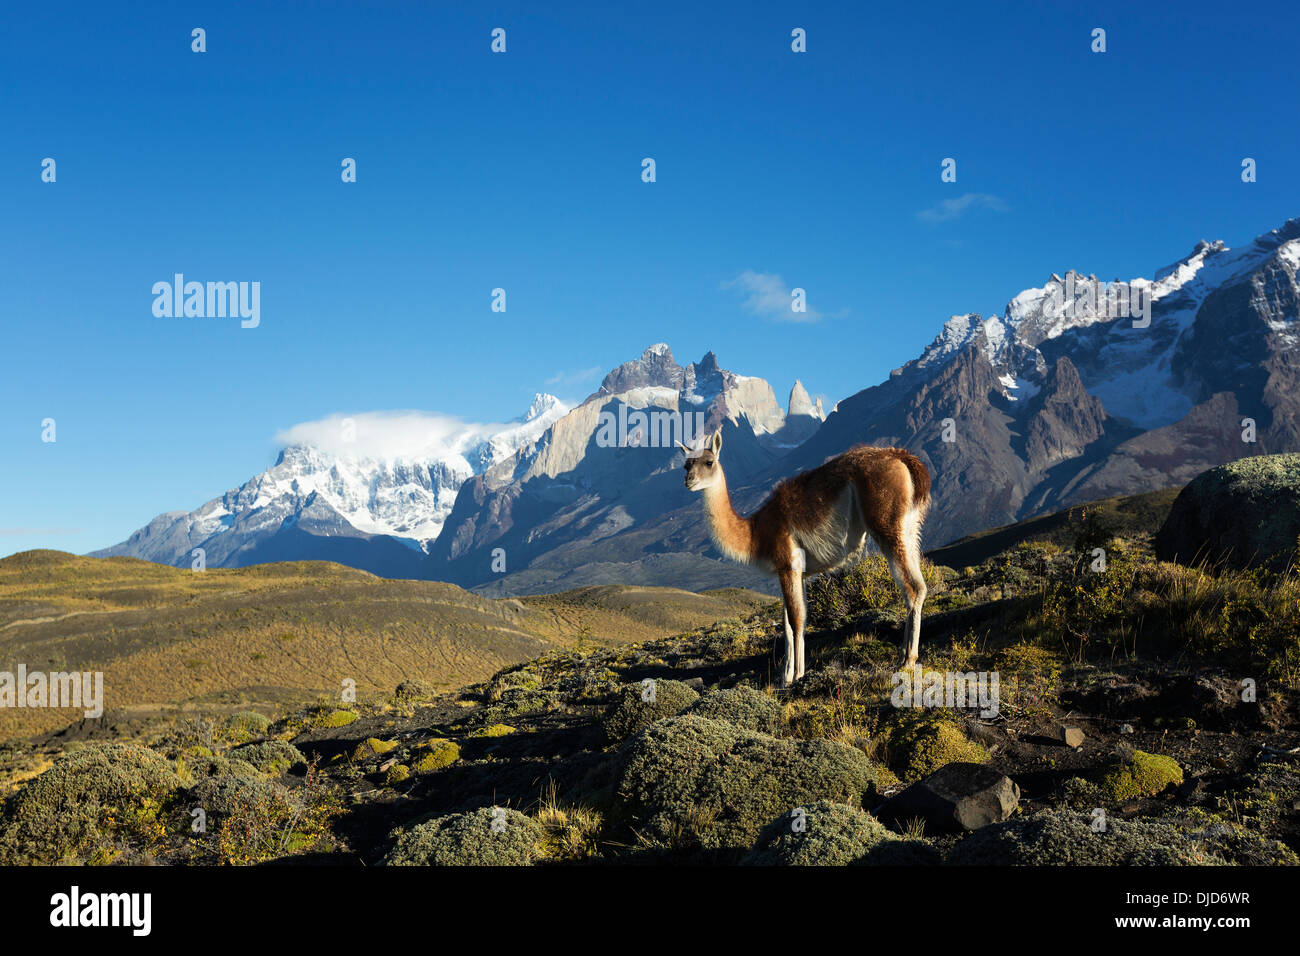 Guanaco(Lama guanicoe) standing on the hillside with Torres del Paine mountains in the background.Patagonia.Chile - Stock Image